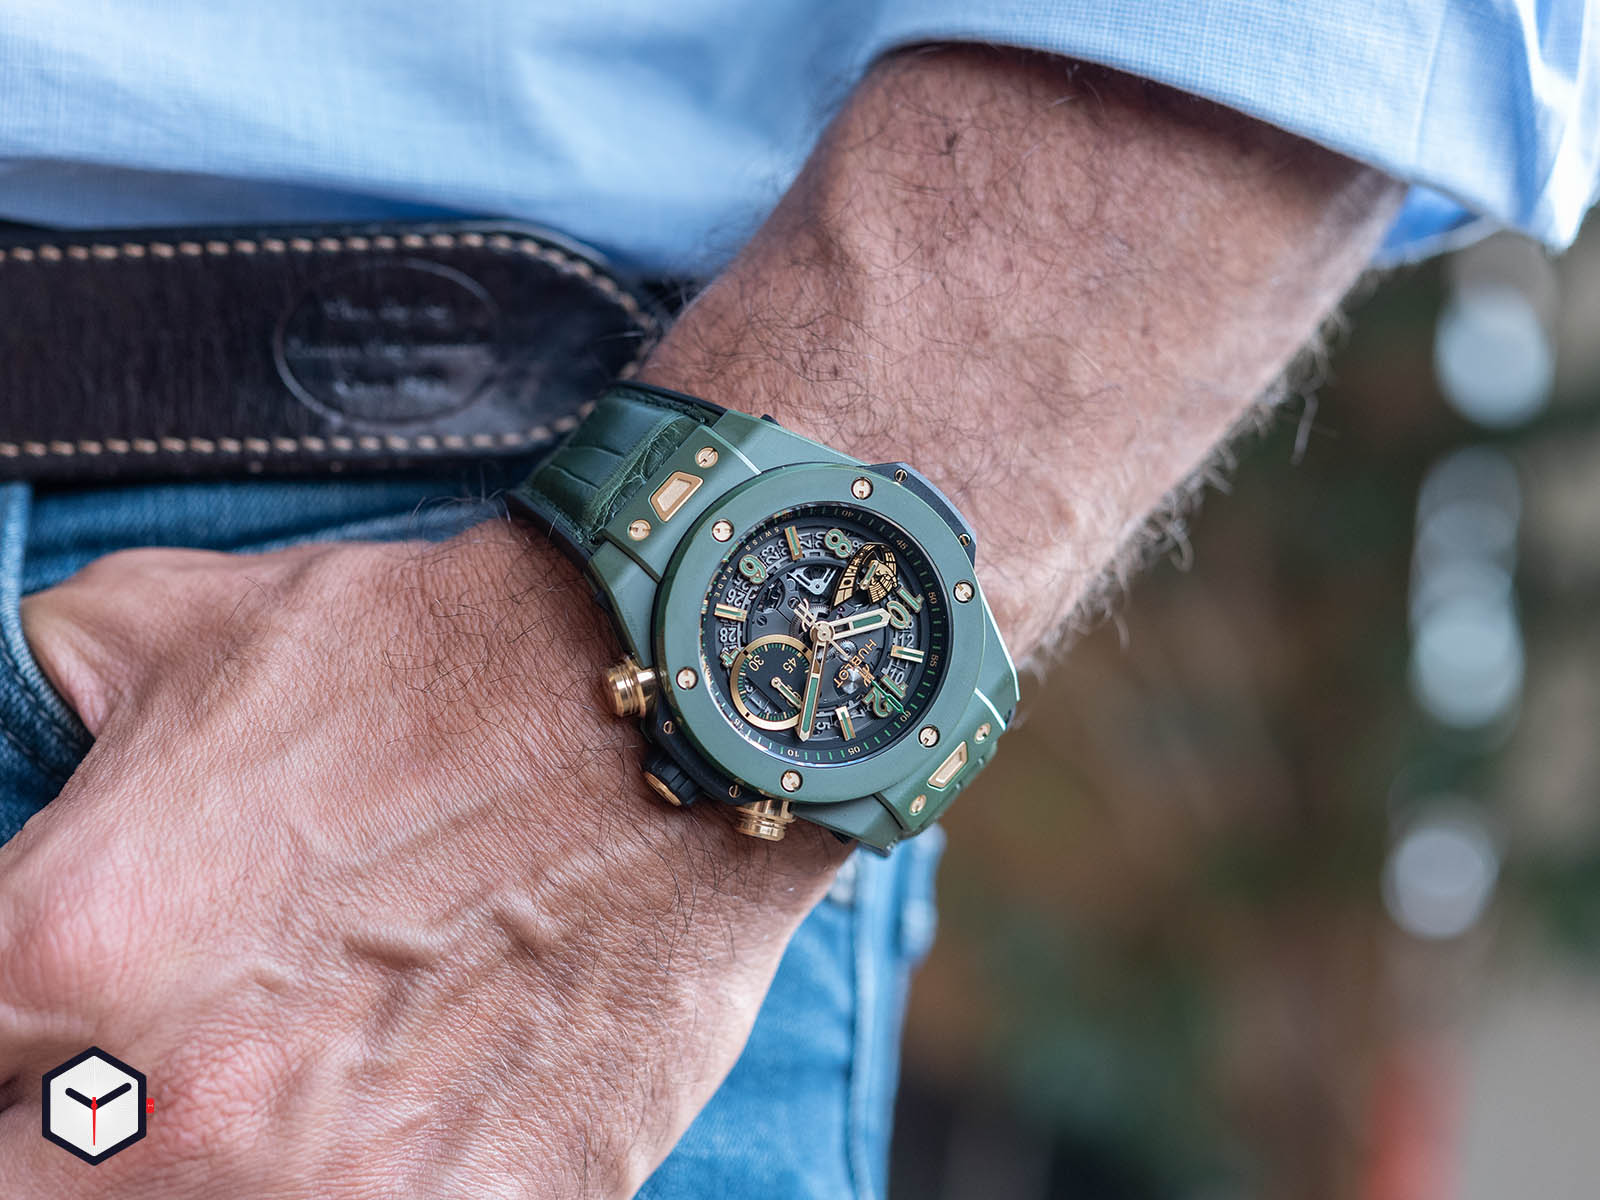 411-gx-1189-lr-wbc19-hublot-big-bang-unico-wbc-9.jpg